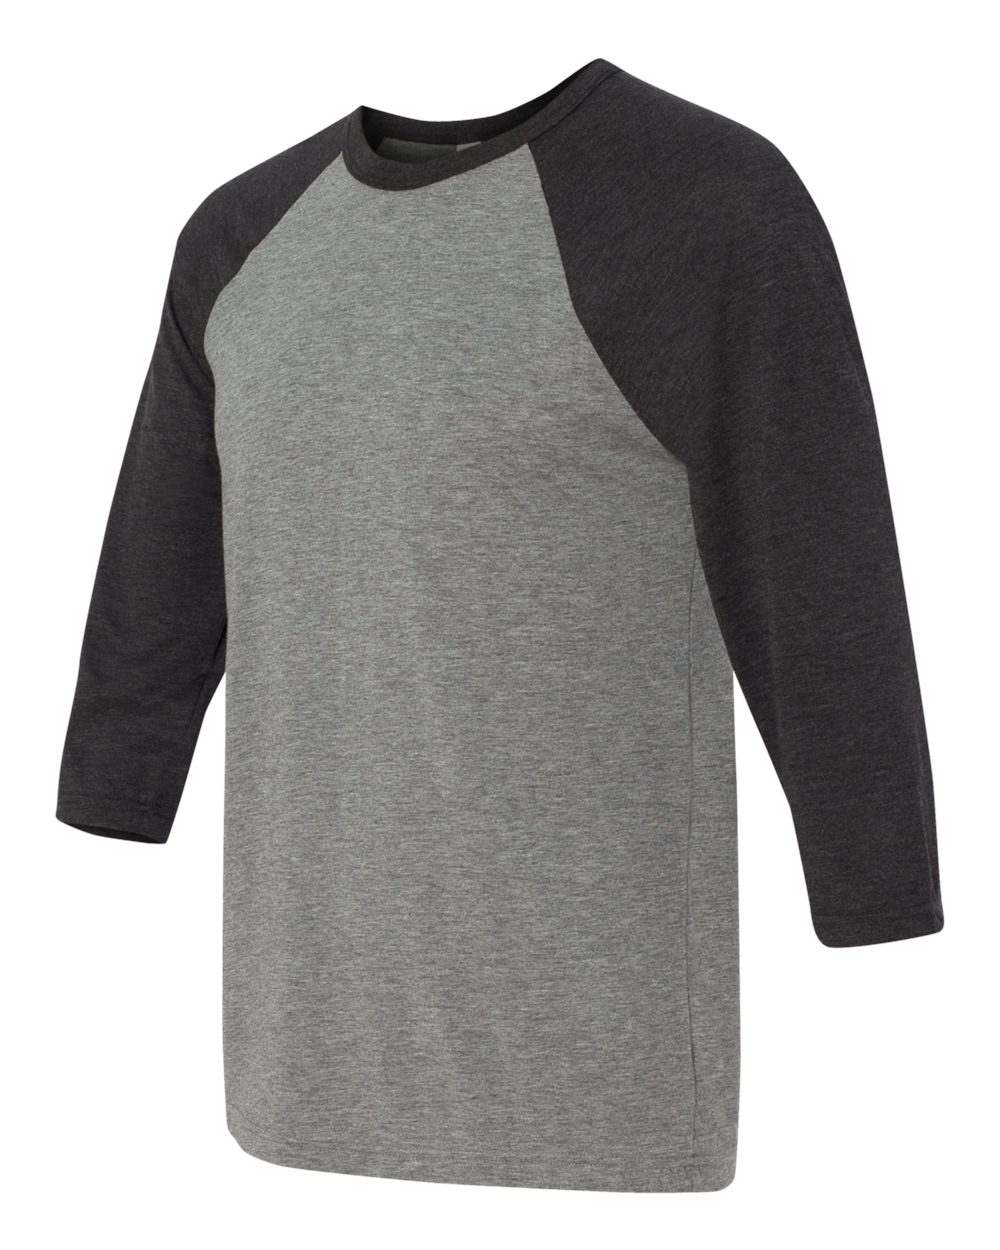 click to view Grey/Charcoal Triblend